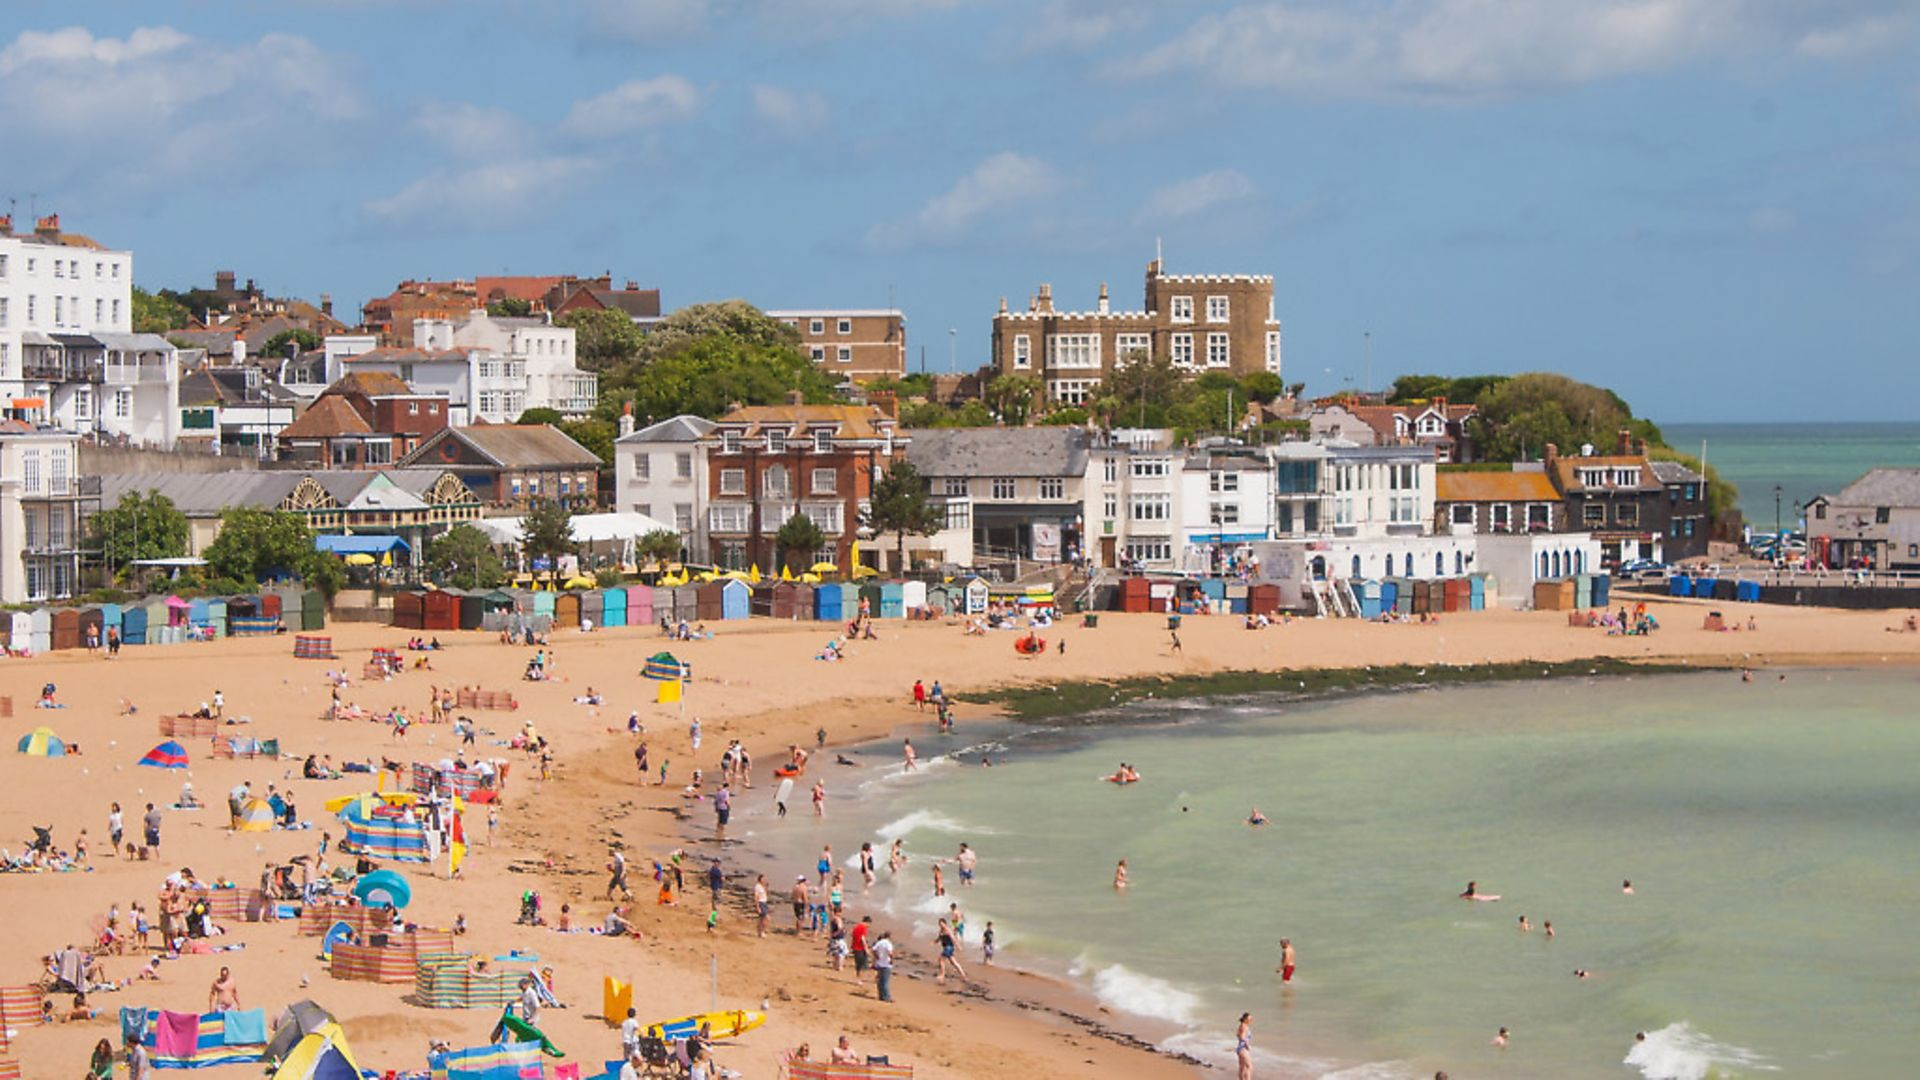 Broadstairs habour and beach, Isle of Thanet, Kent - Credit: Getty Images/iStockphoto